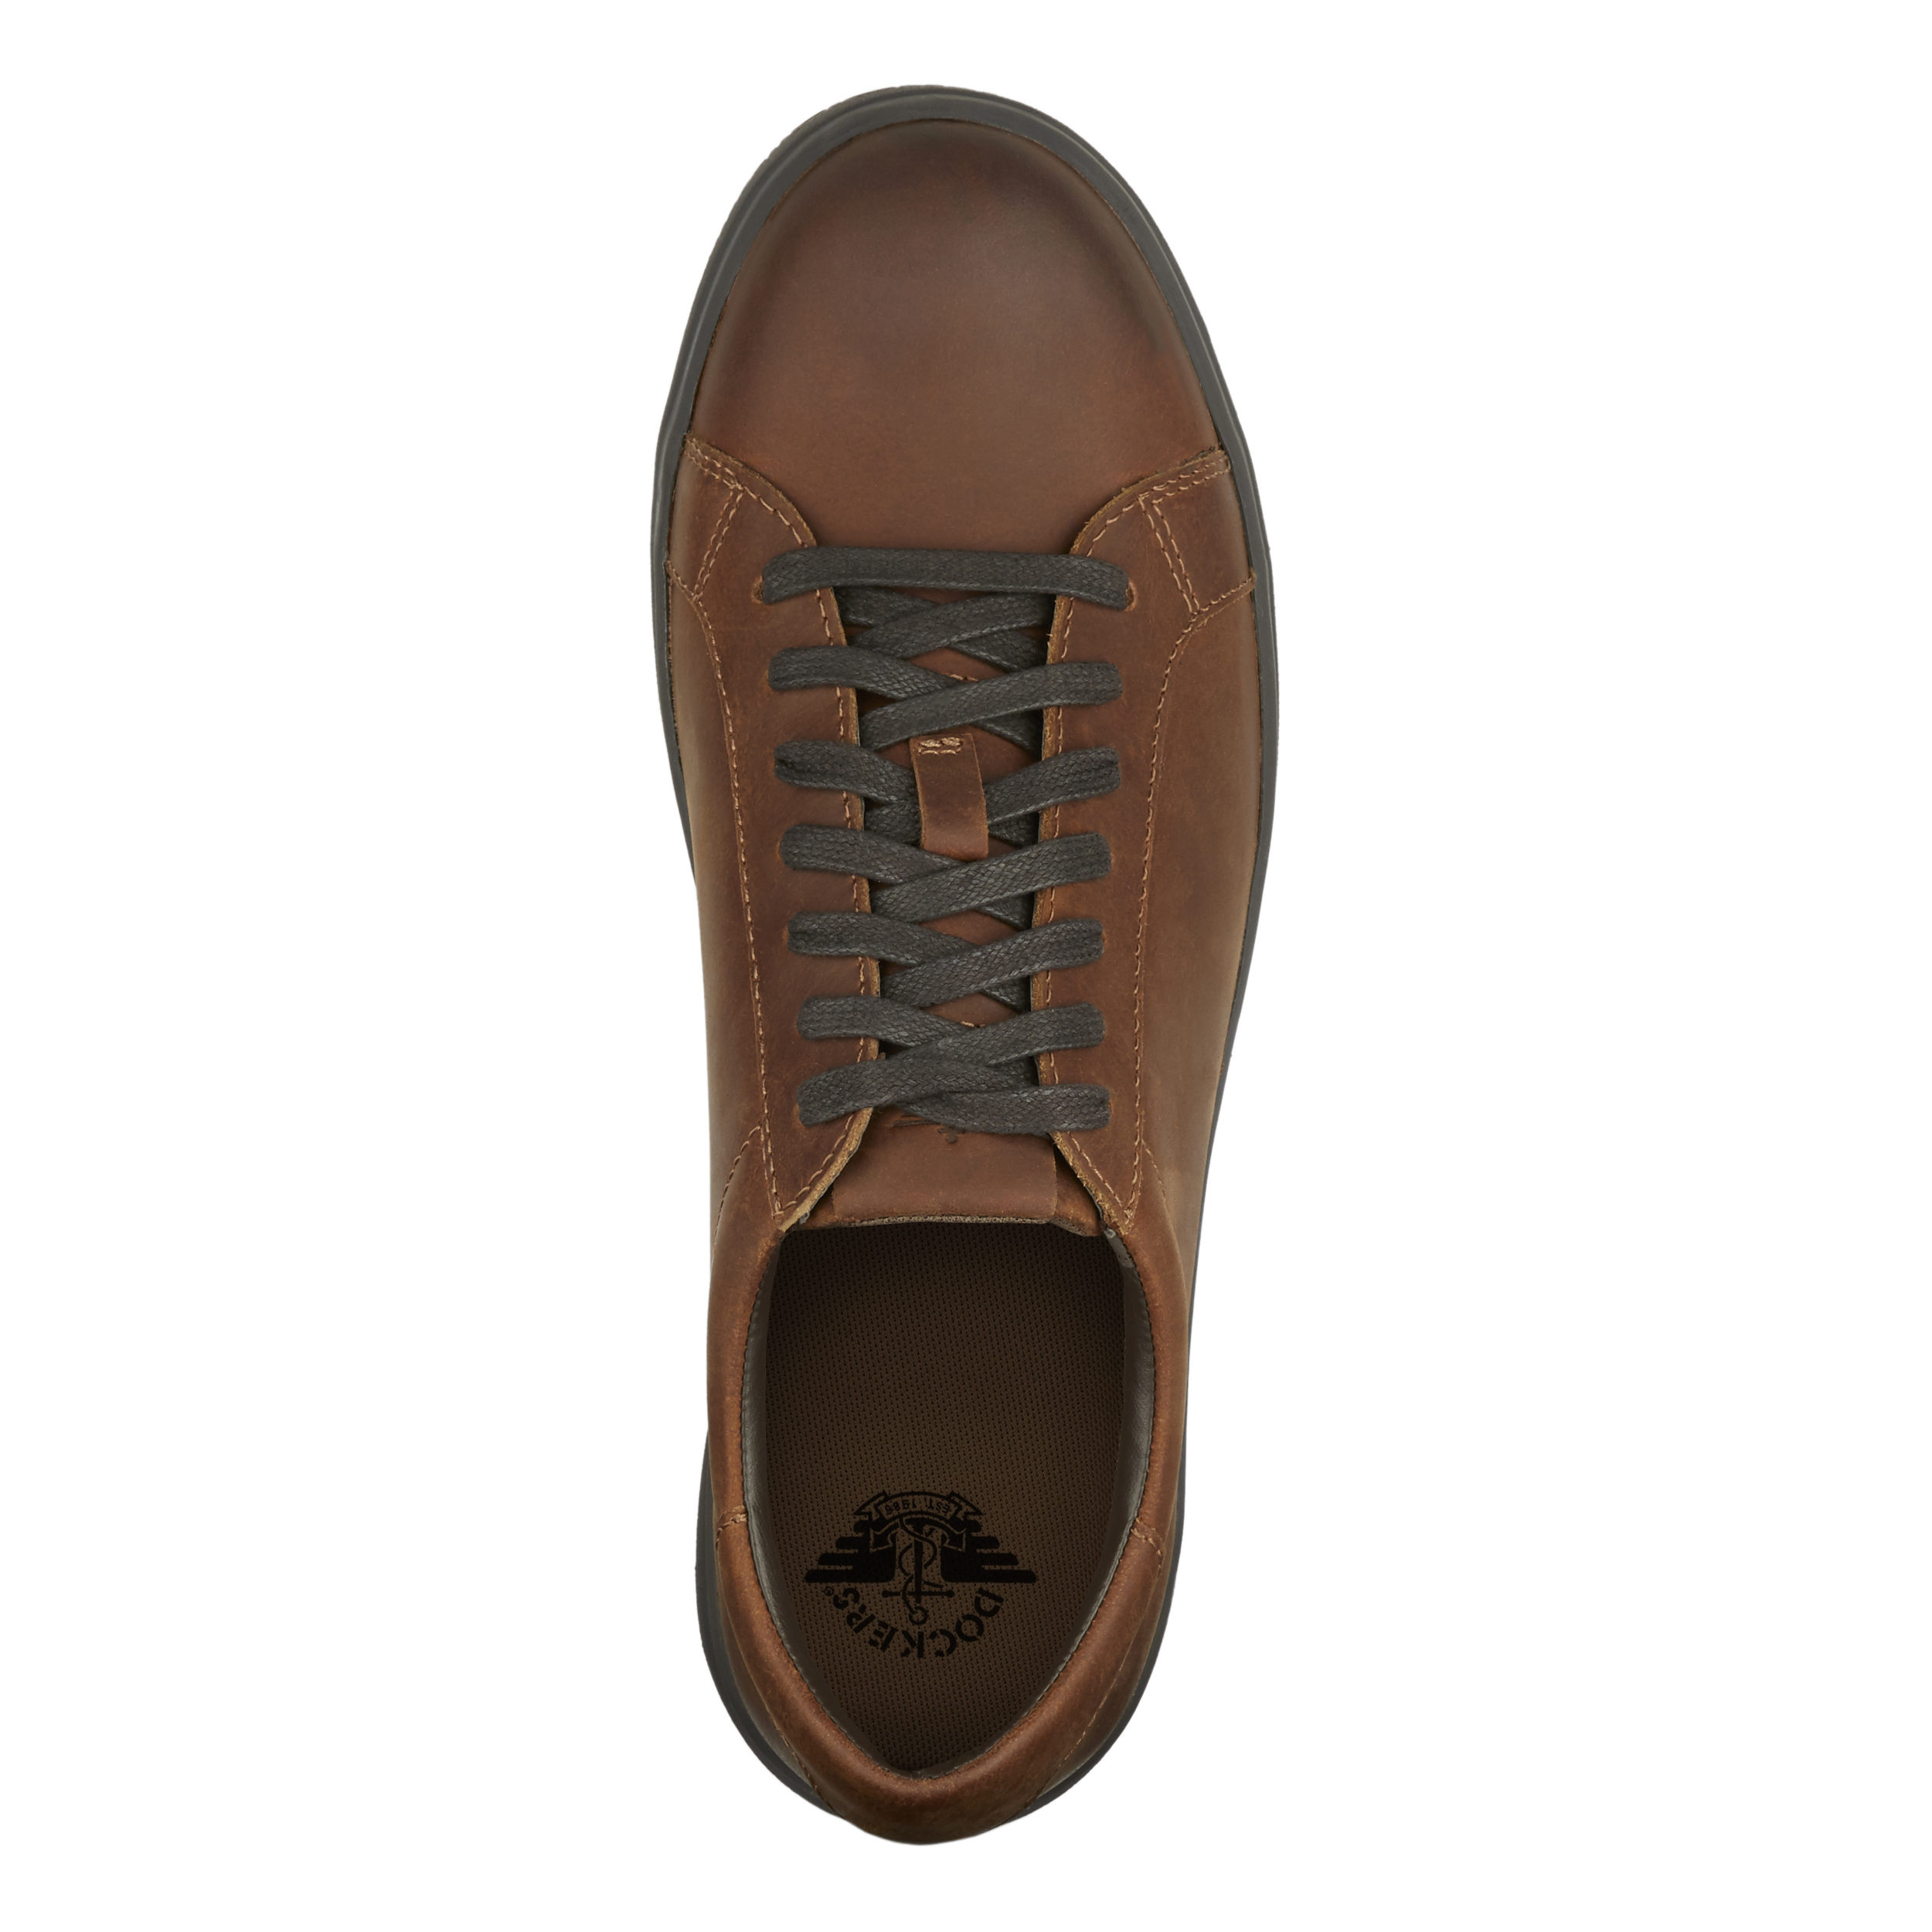 Dockers-Mens-Gilmore-Genuine-Leather-Casual-Fashion-Lace-up-Sneaker-Shoe thumbnail 20